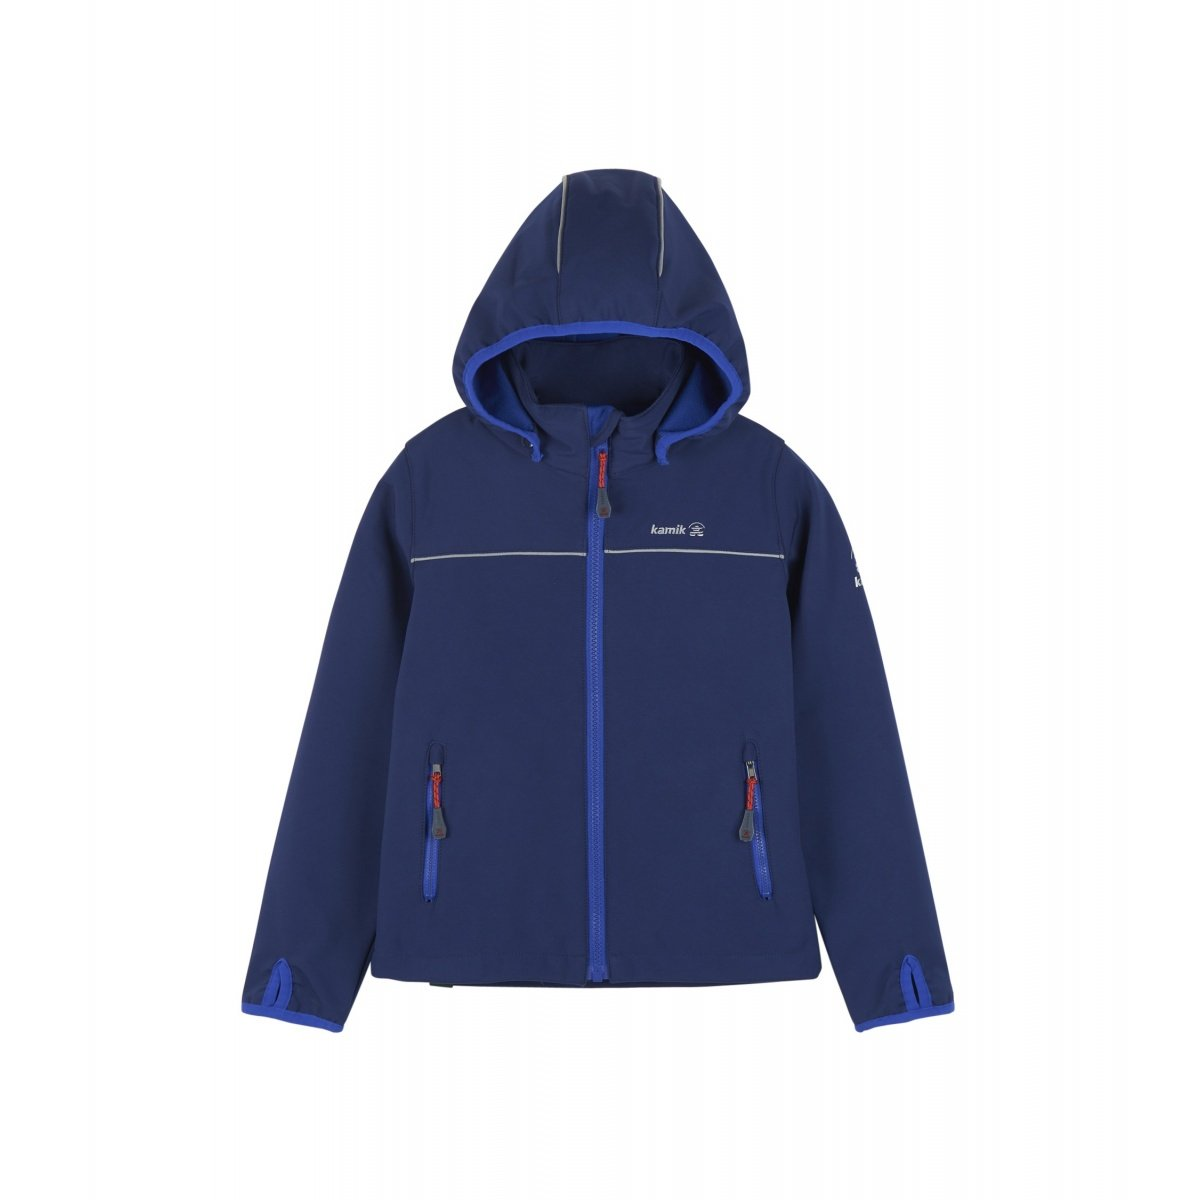 0d03f7860c Kamik Softshelljacke Jarvis mit Magic Oberfläche navy Kinder online ...